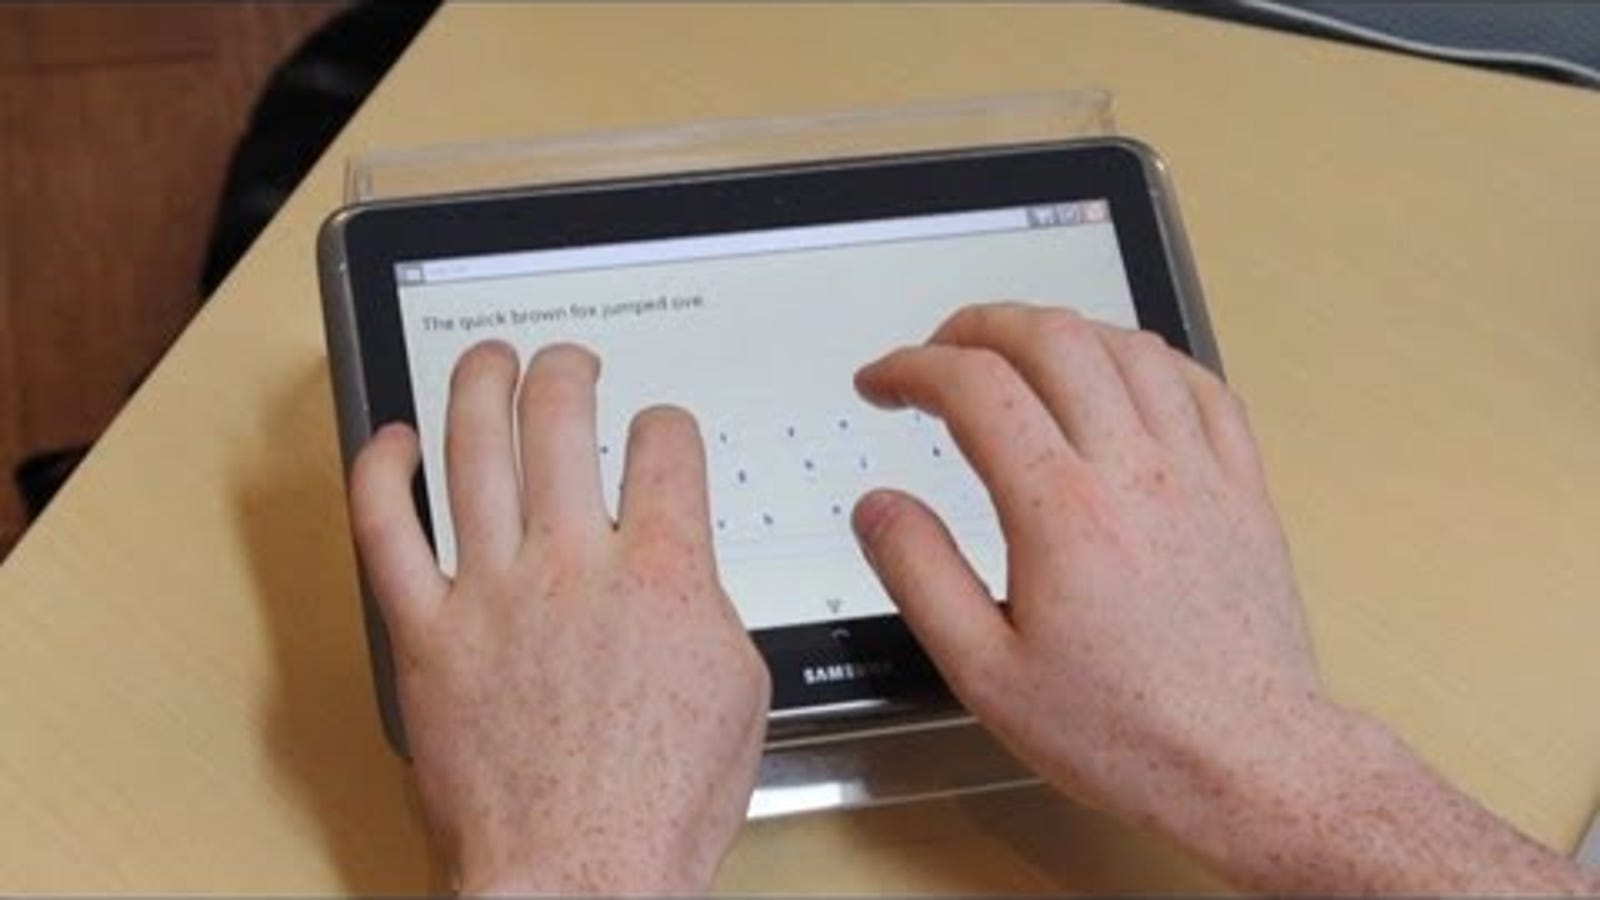 This Incredible Tablet Keyboard Transforms to Fit Your Sloppy Fingers